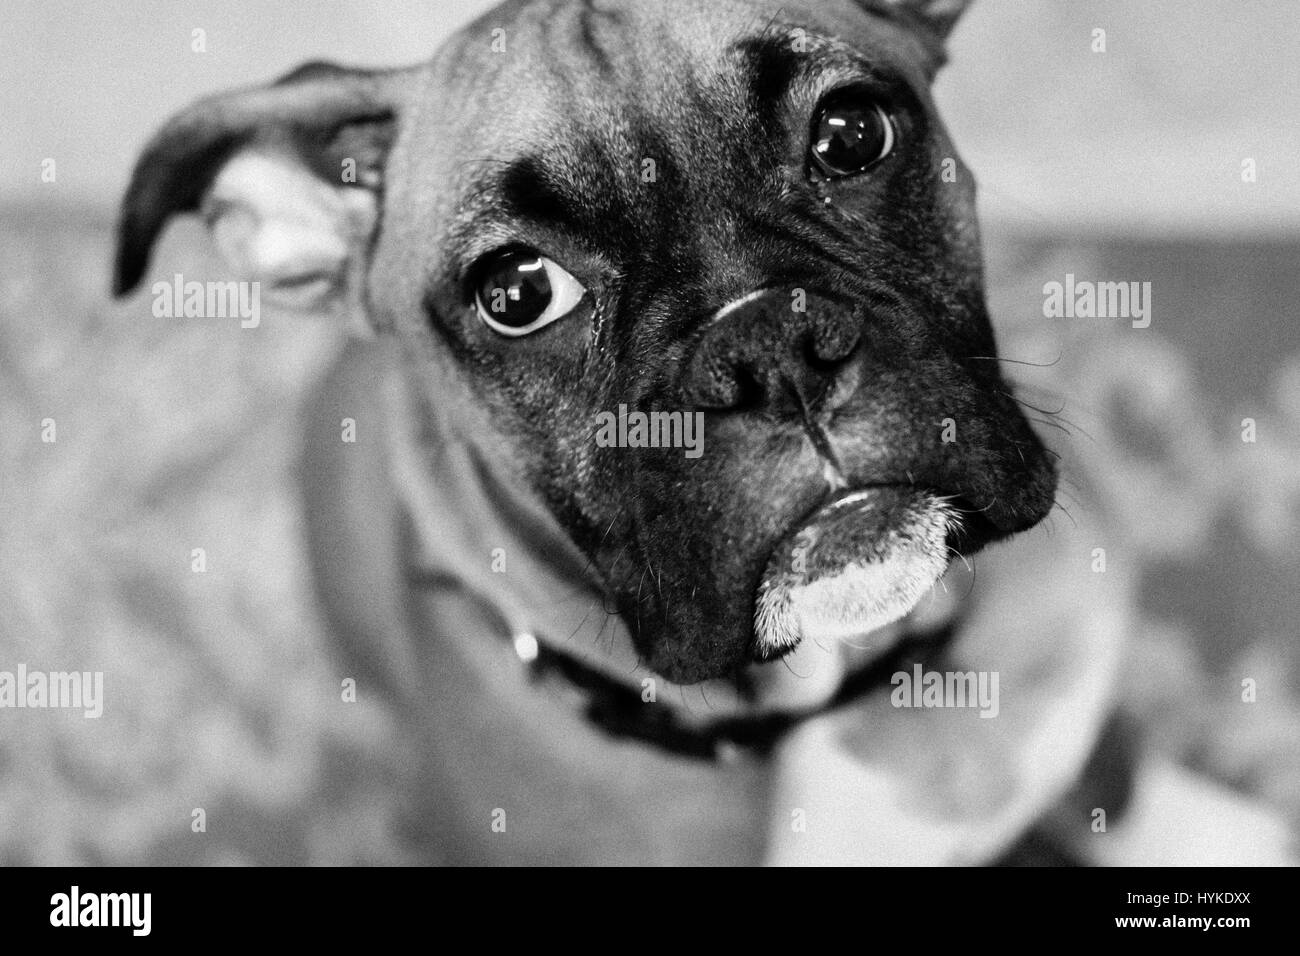 Best Boxer Black Adorable Dog - black-and-white-portrait-image-of-an-adorable-boxer-dog-puppy-adolescent-HYKDXX  Gallery_973559  .jpg